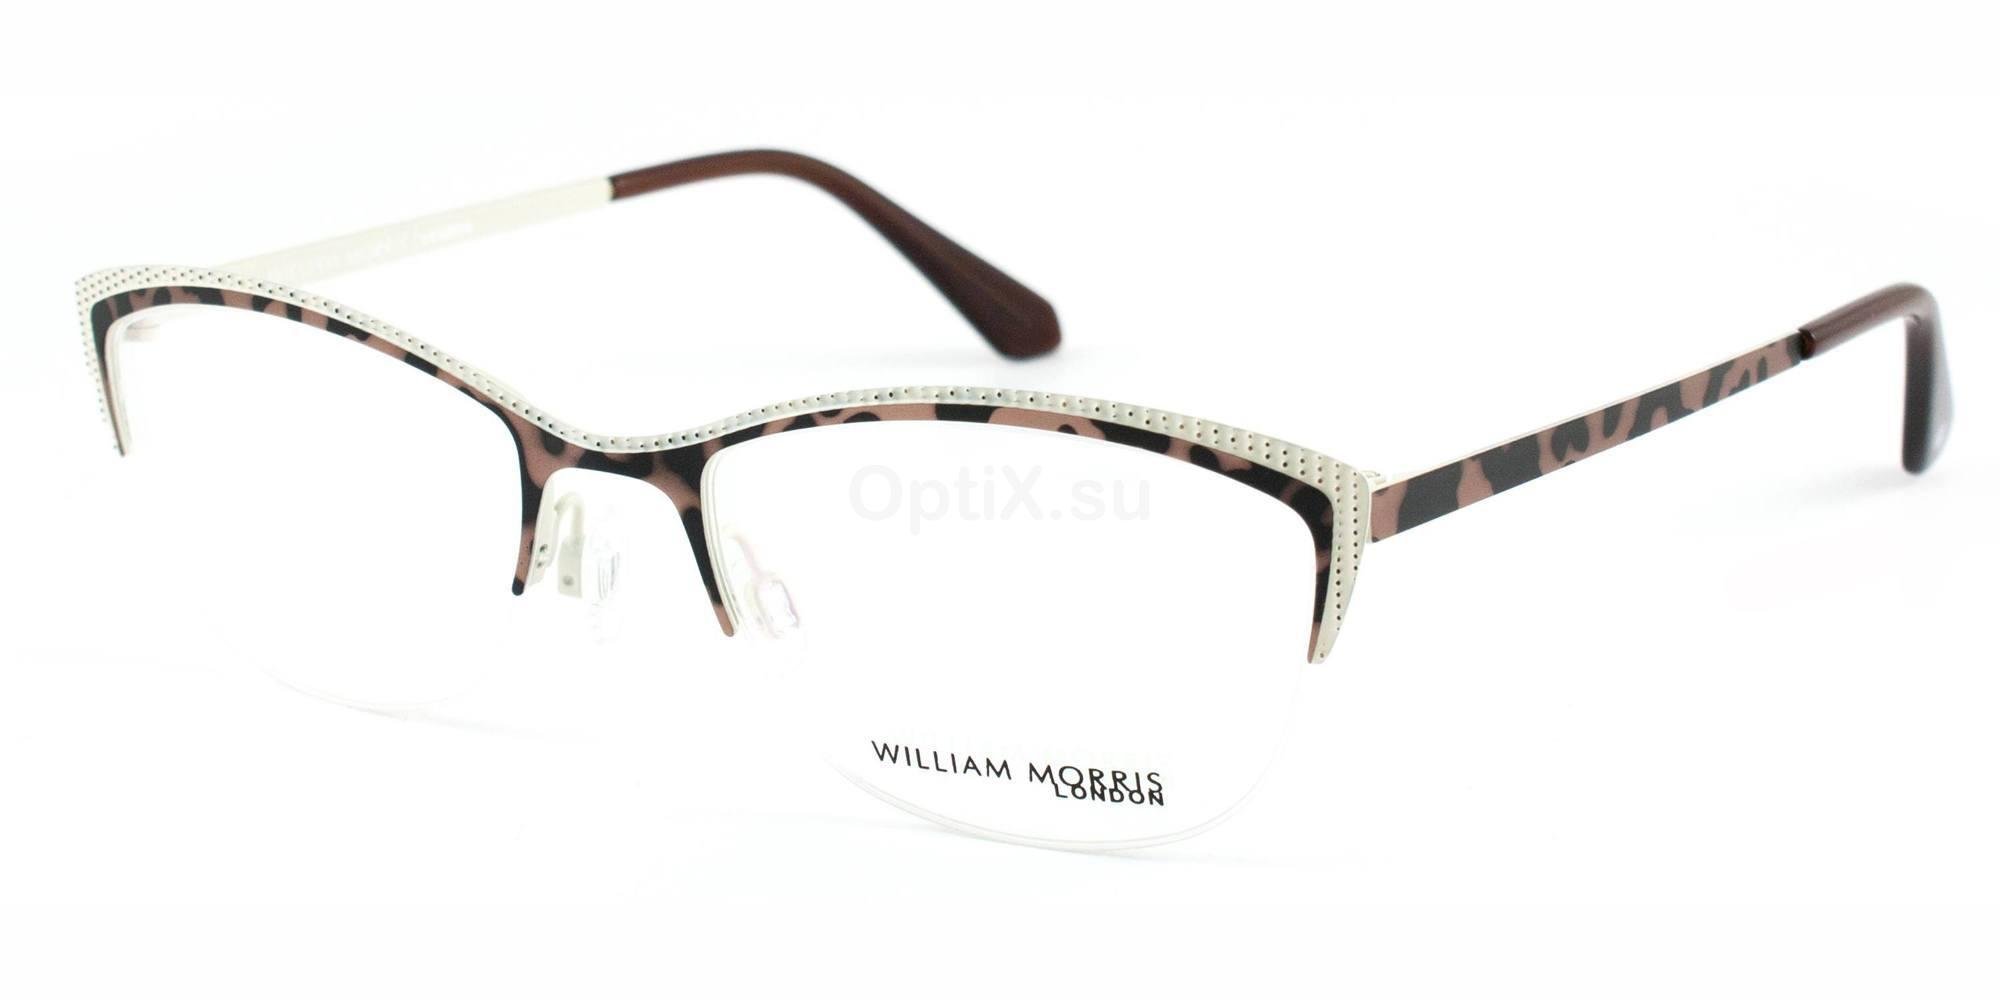 C1 WL4136 , William Morris London